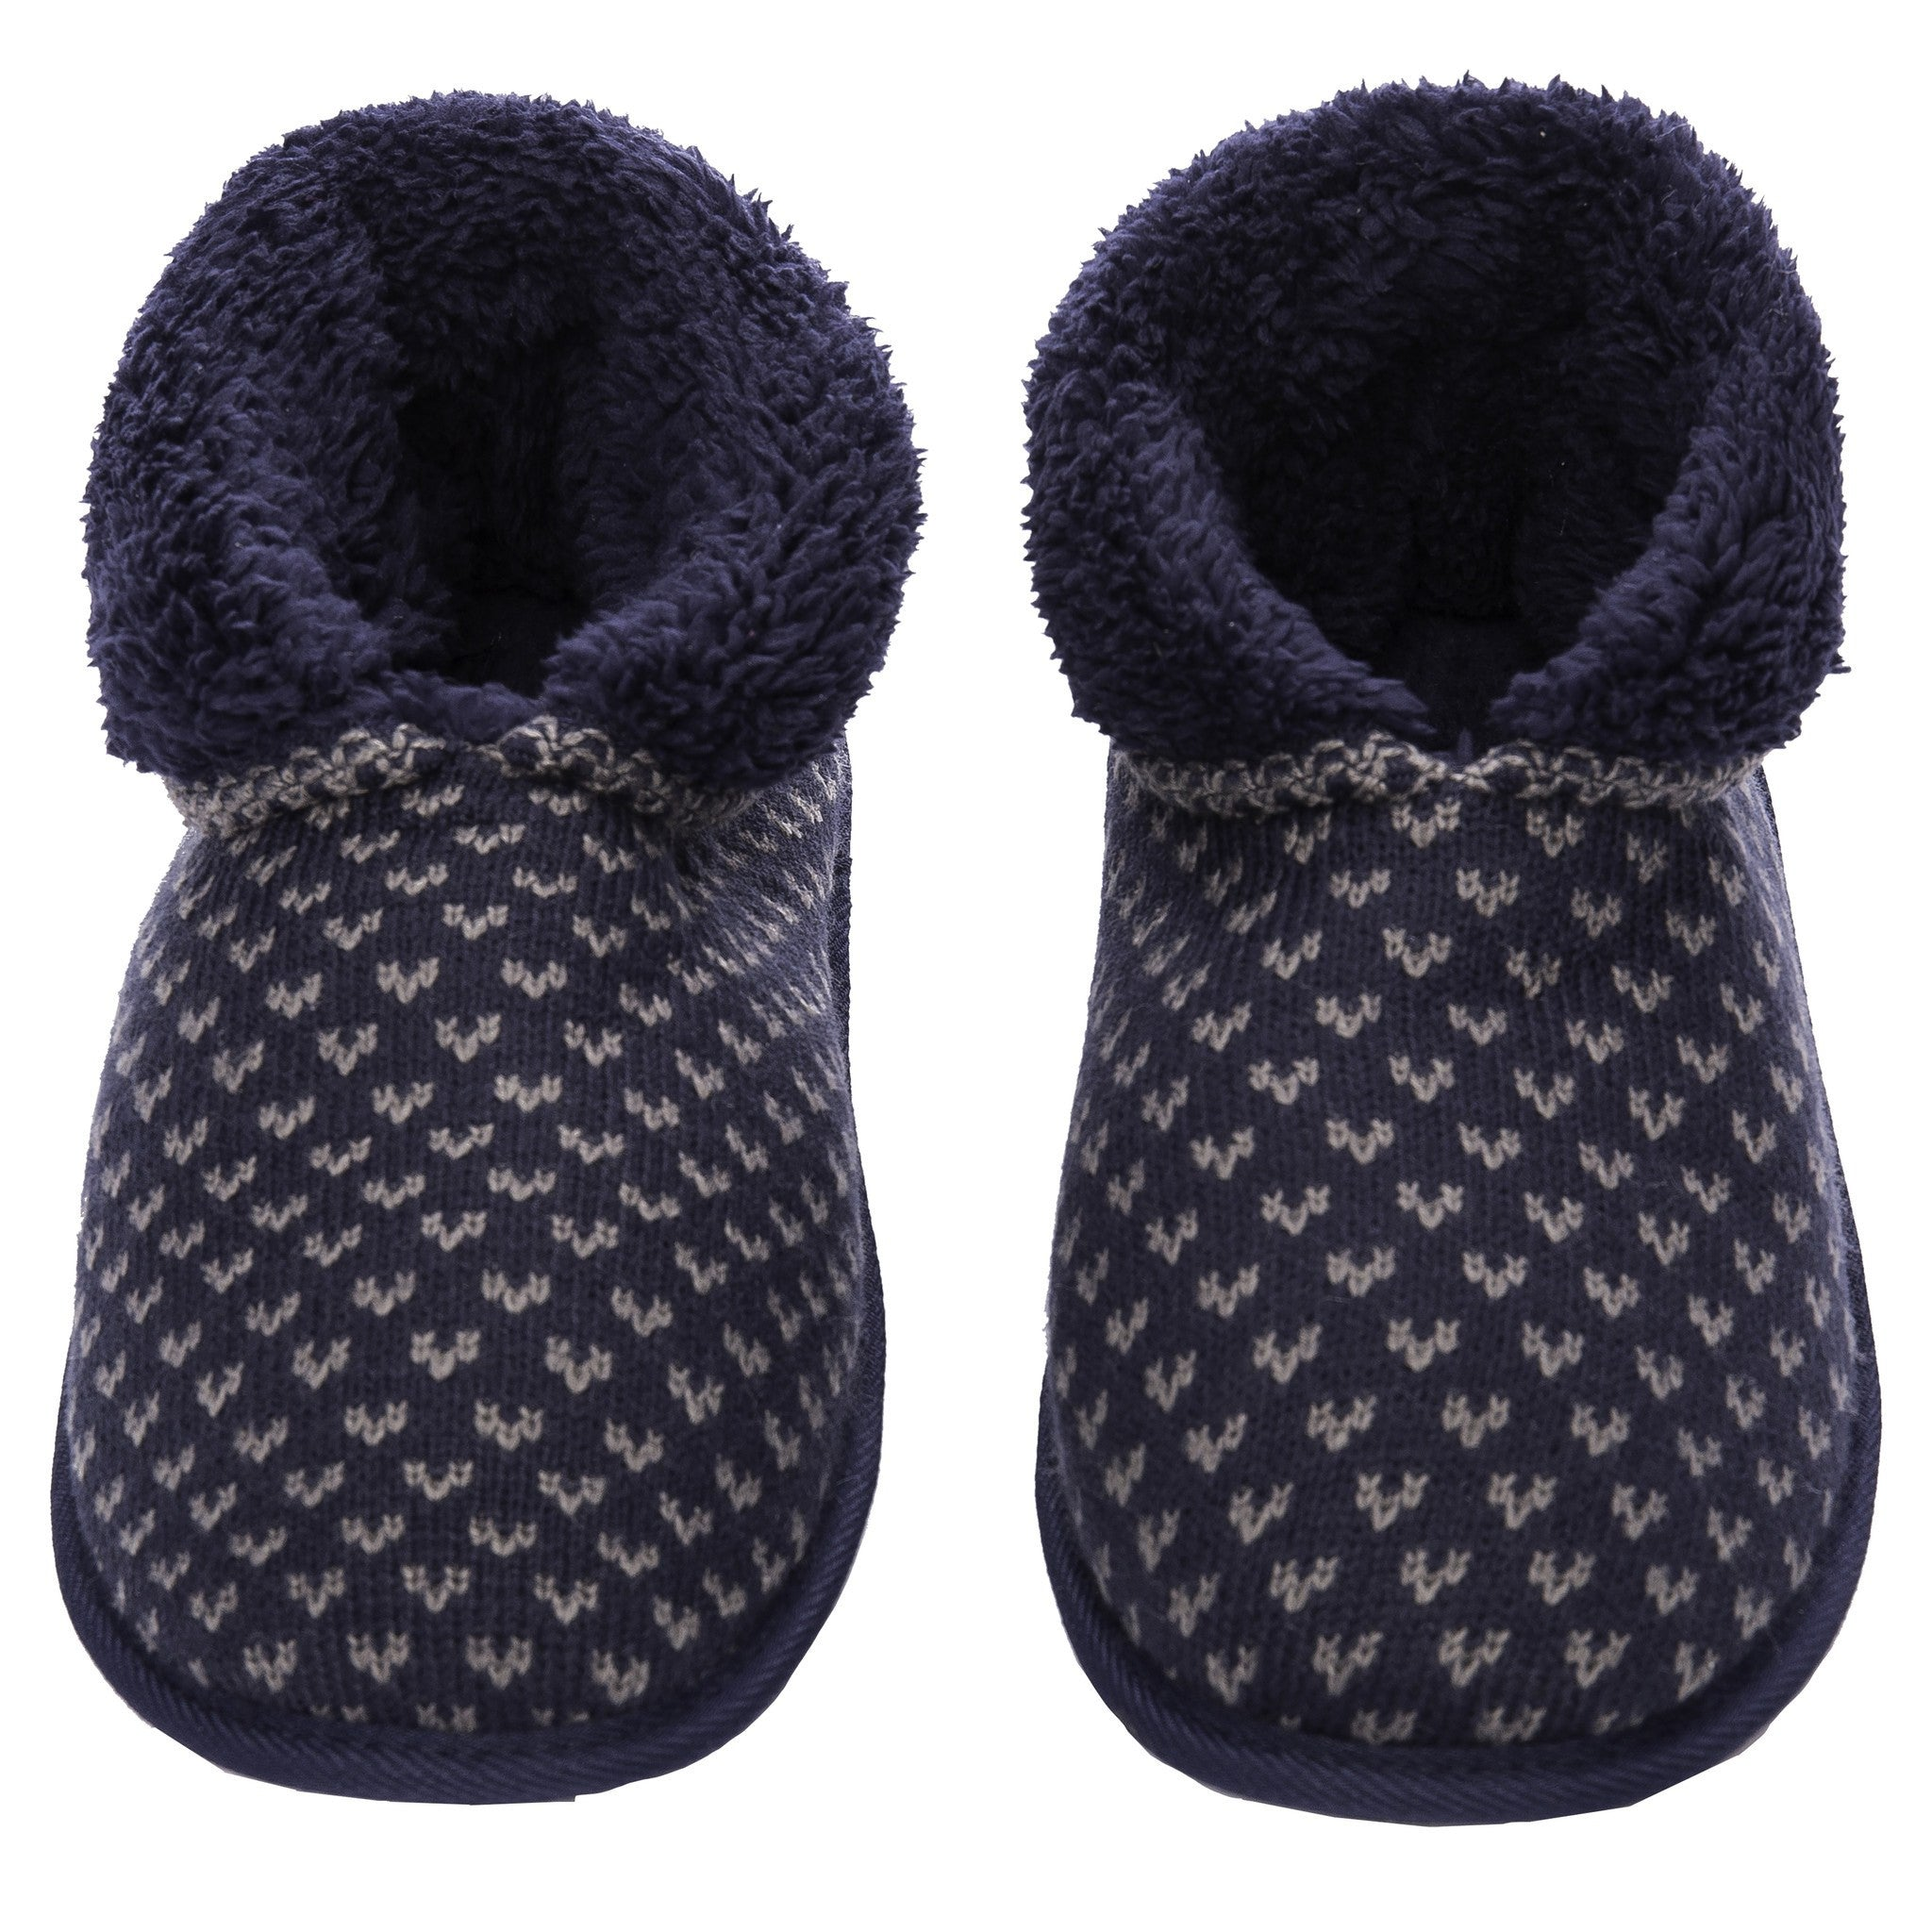 Men's Premium Knit Short Boot Slipper